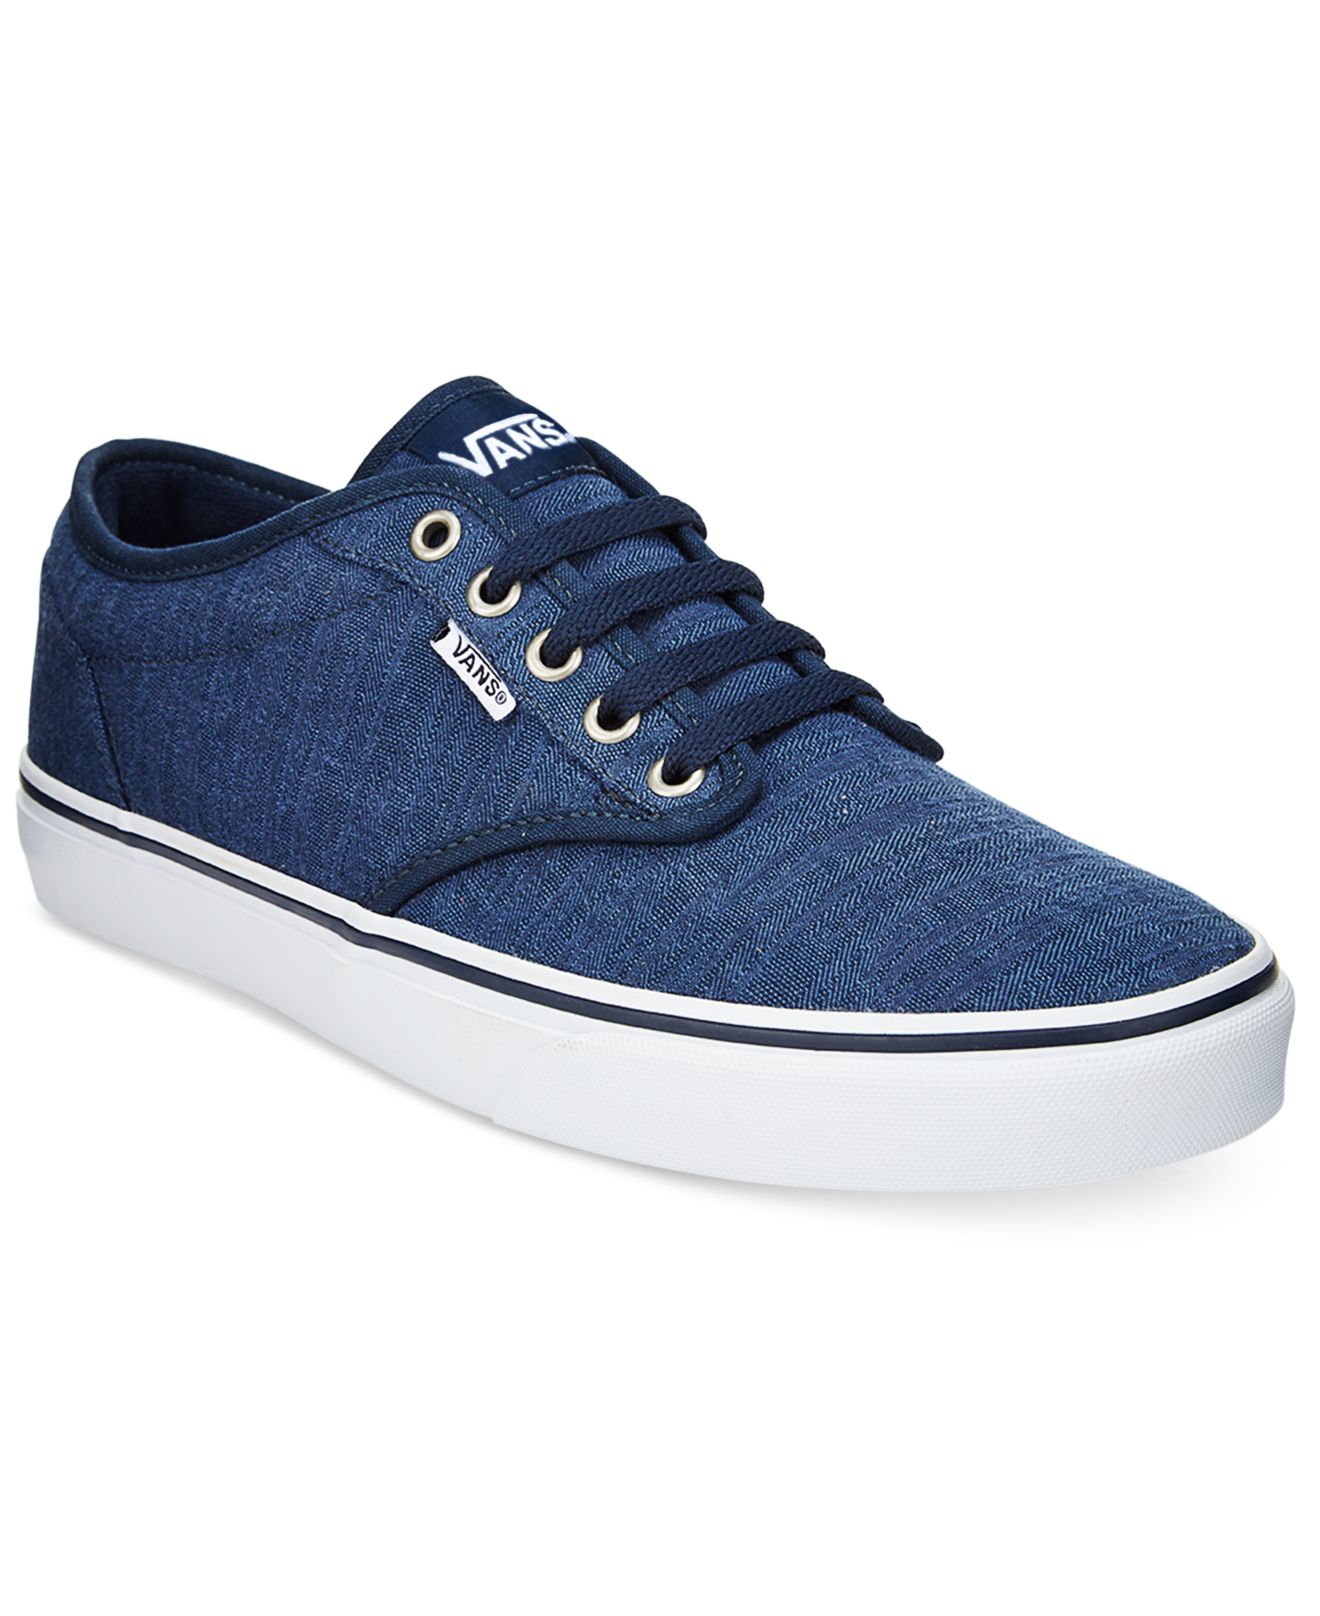 vans mens atwood lowtop sneakers in blue for men lyst